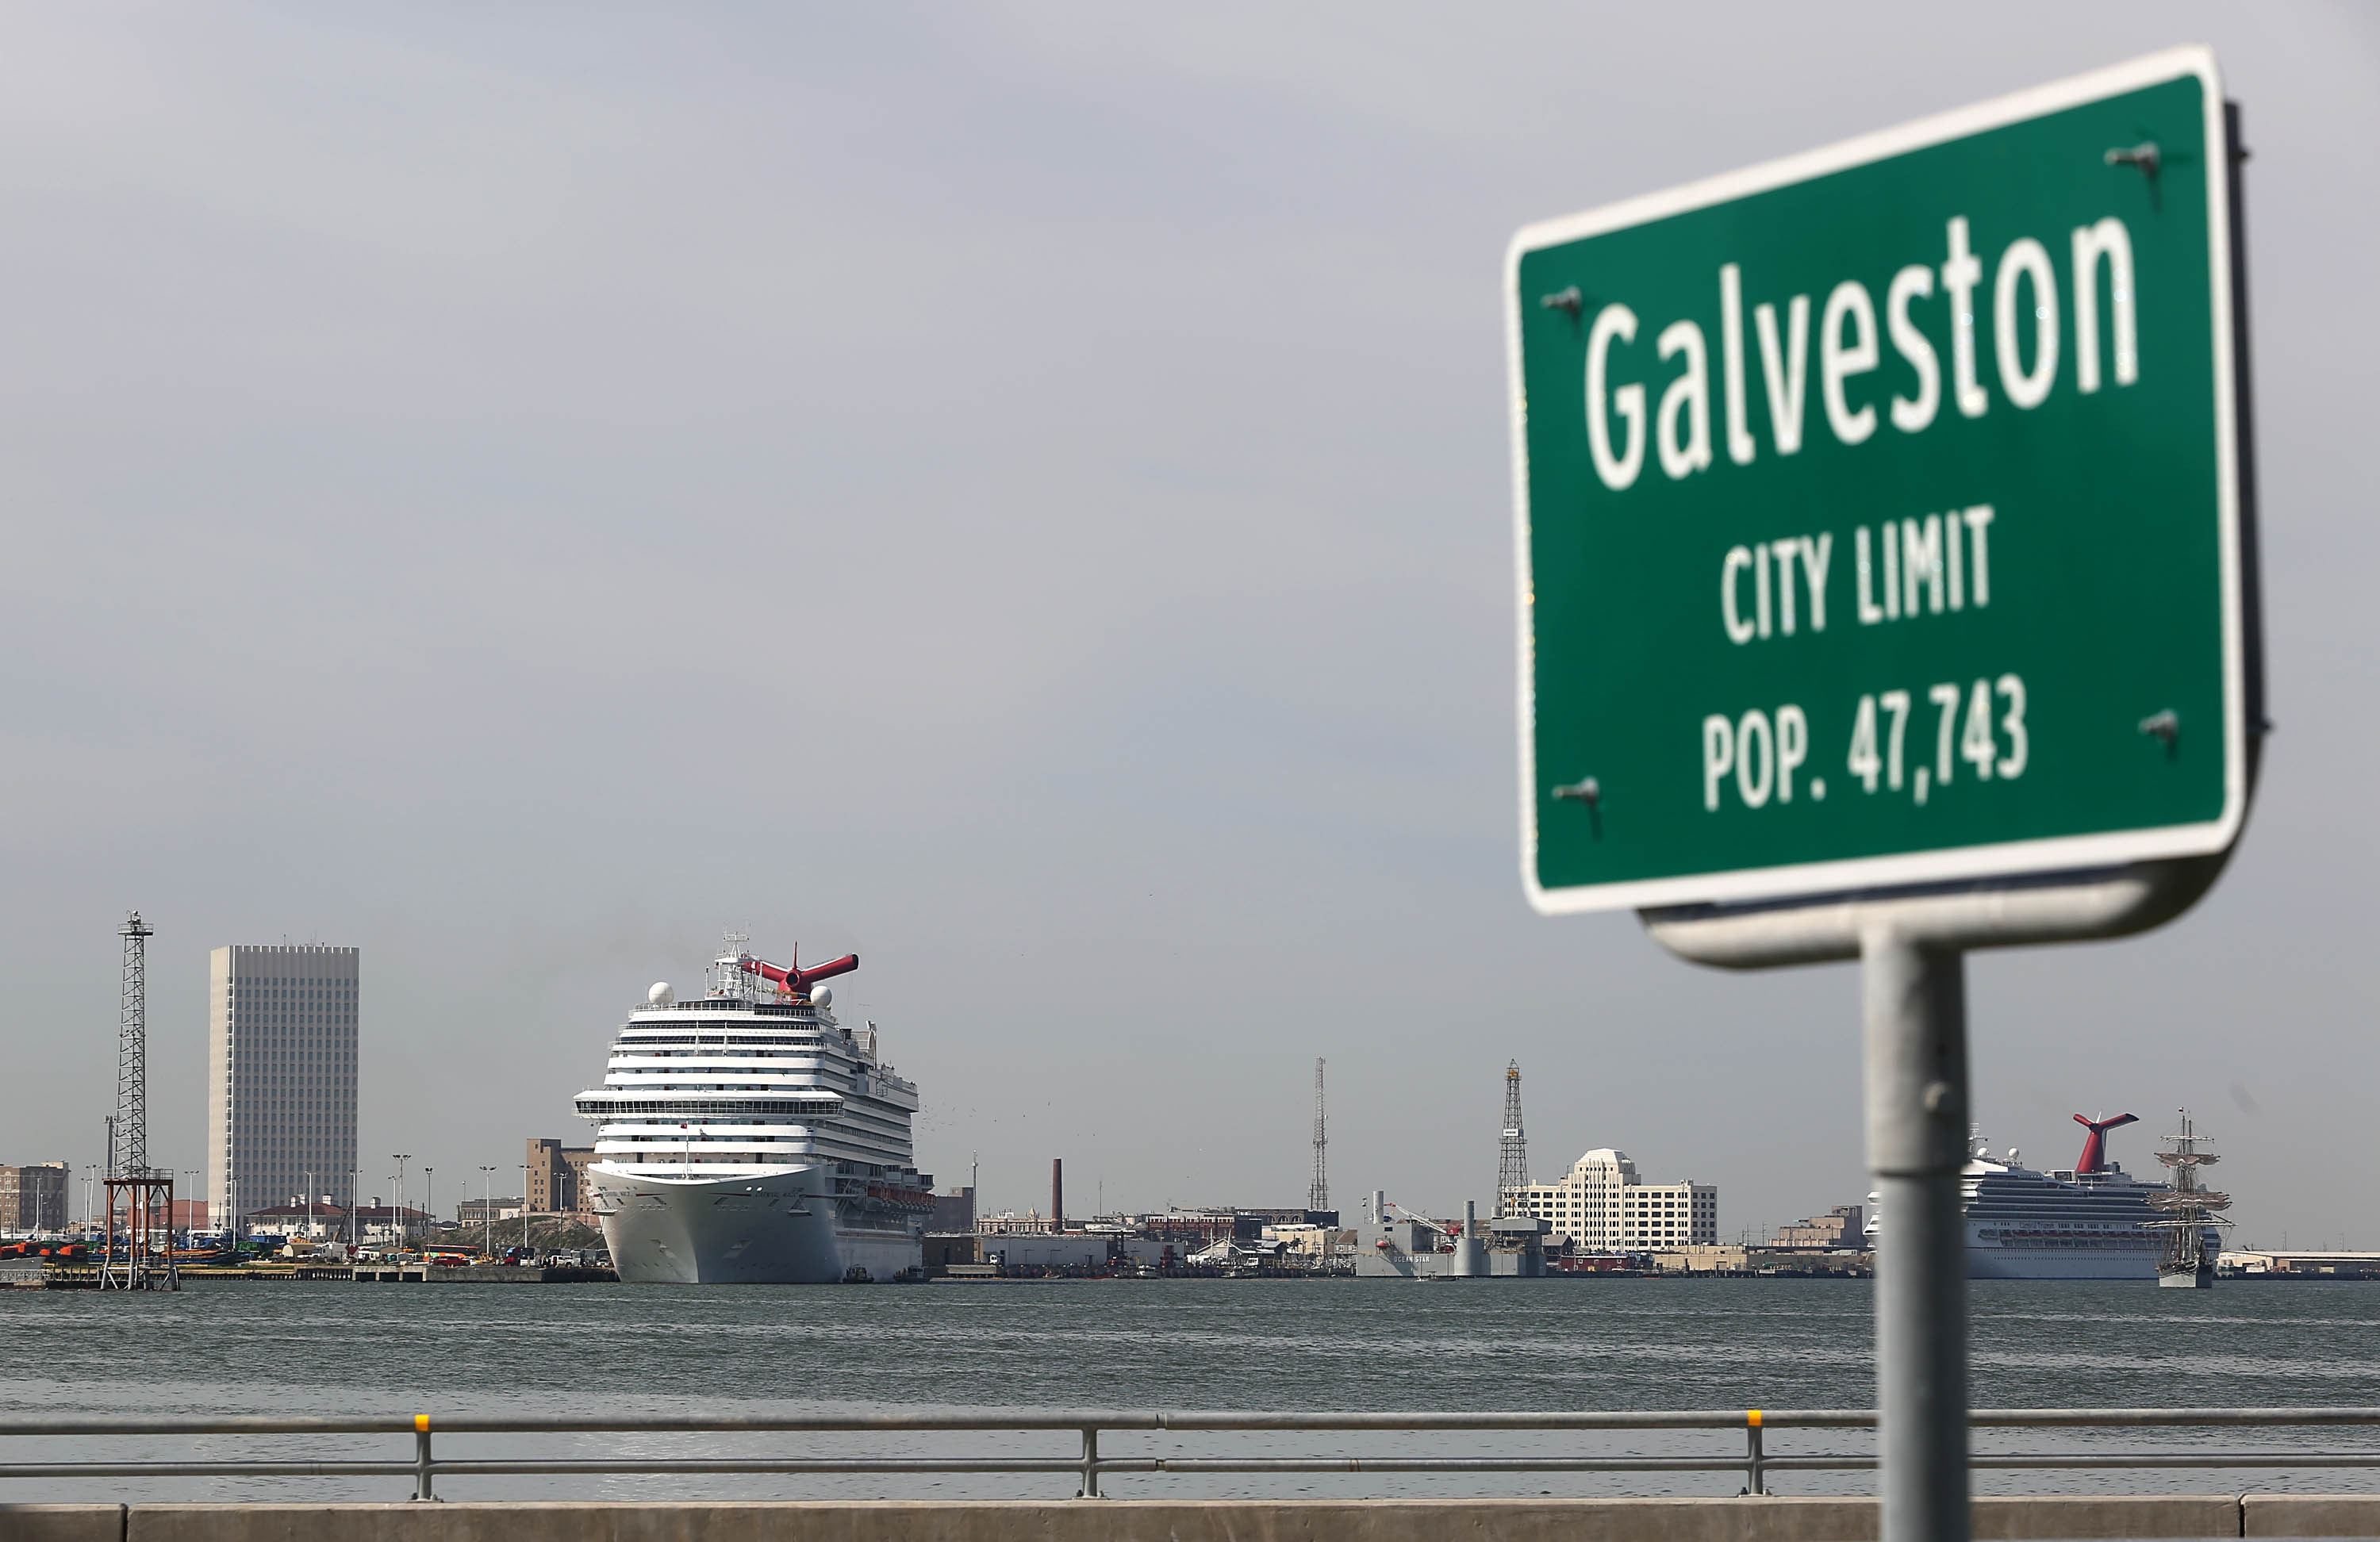 Great Port Of Galveston Cruise Terminal Directions And Information